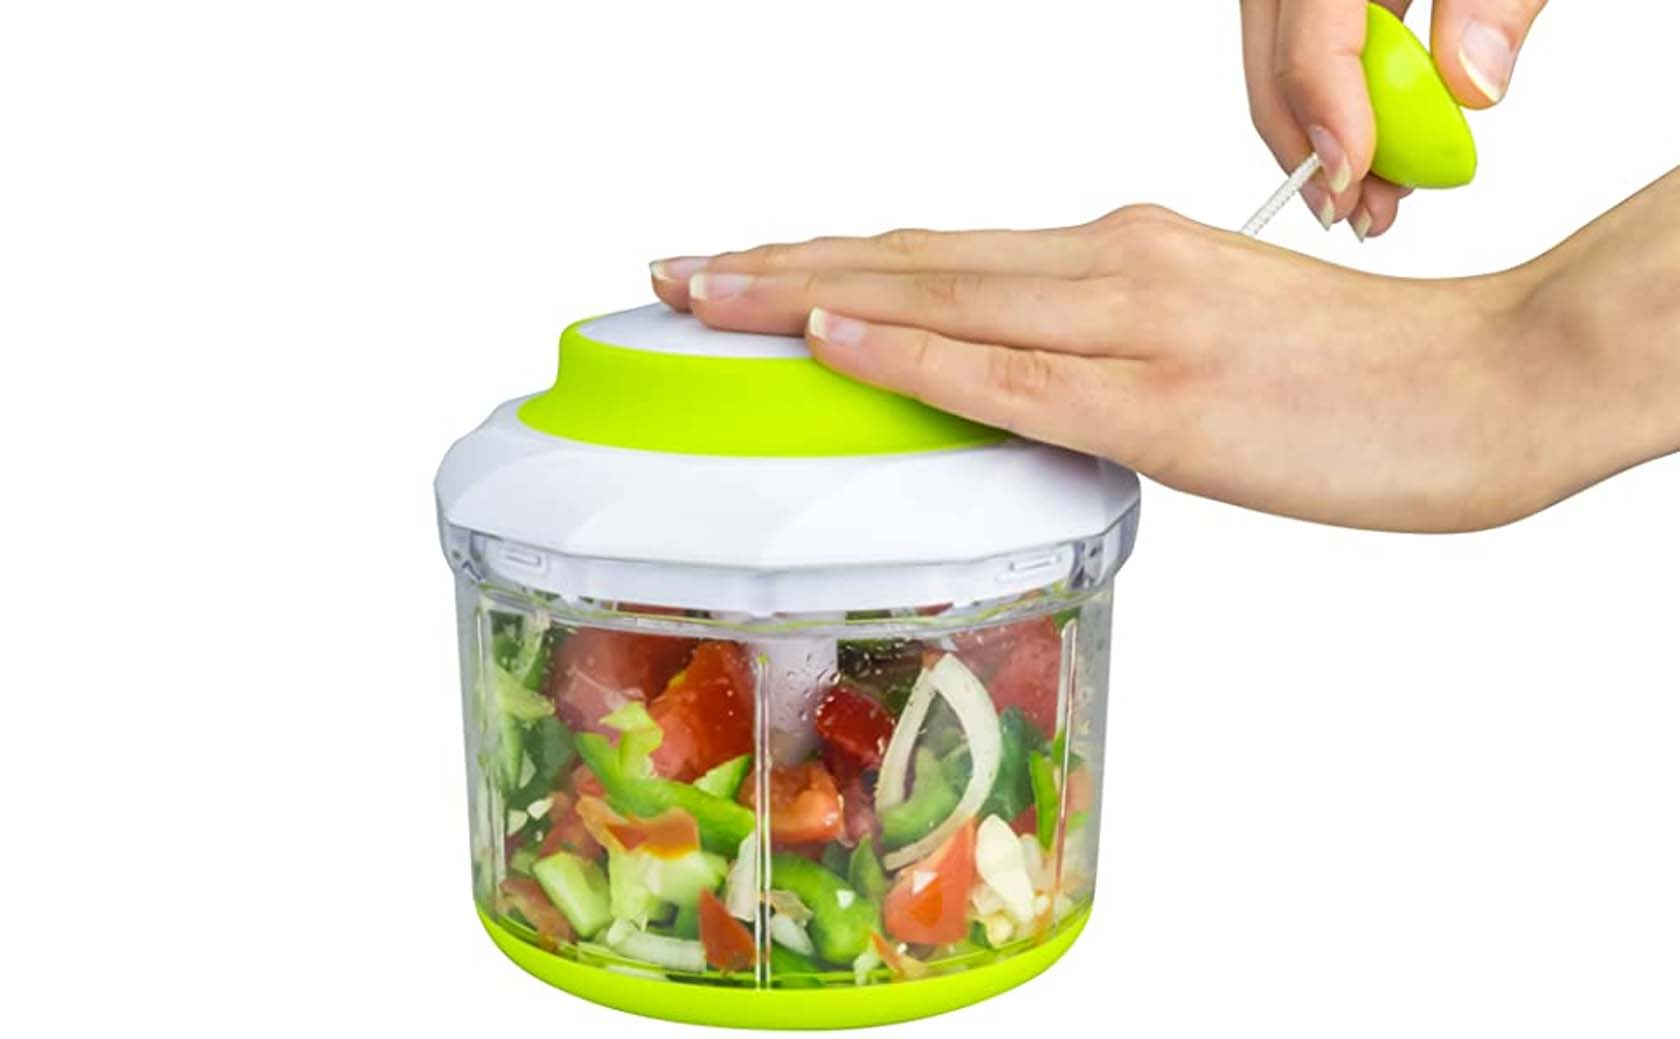 Briefrons Quickpull Food Chopper